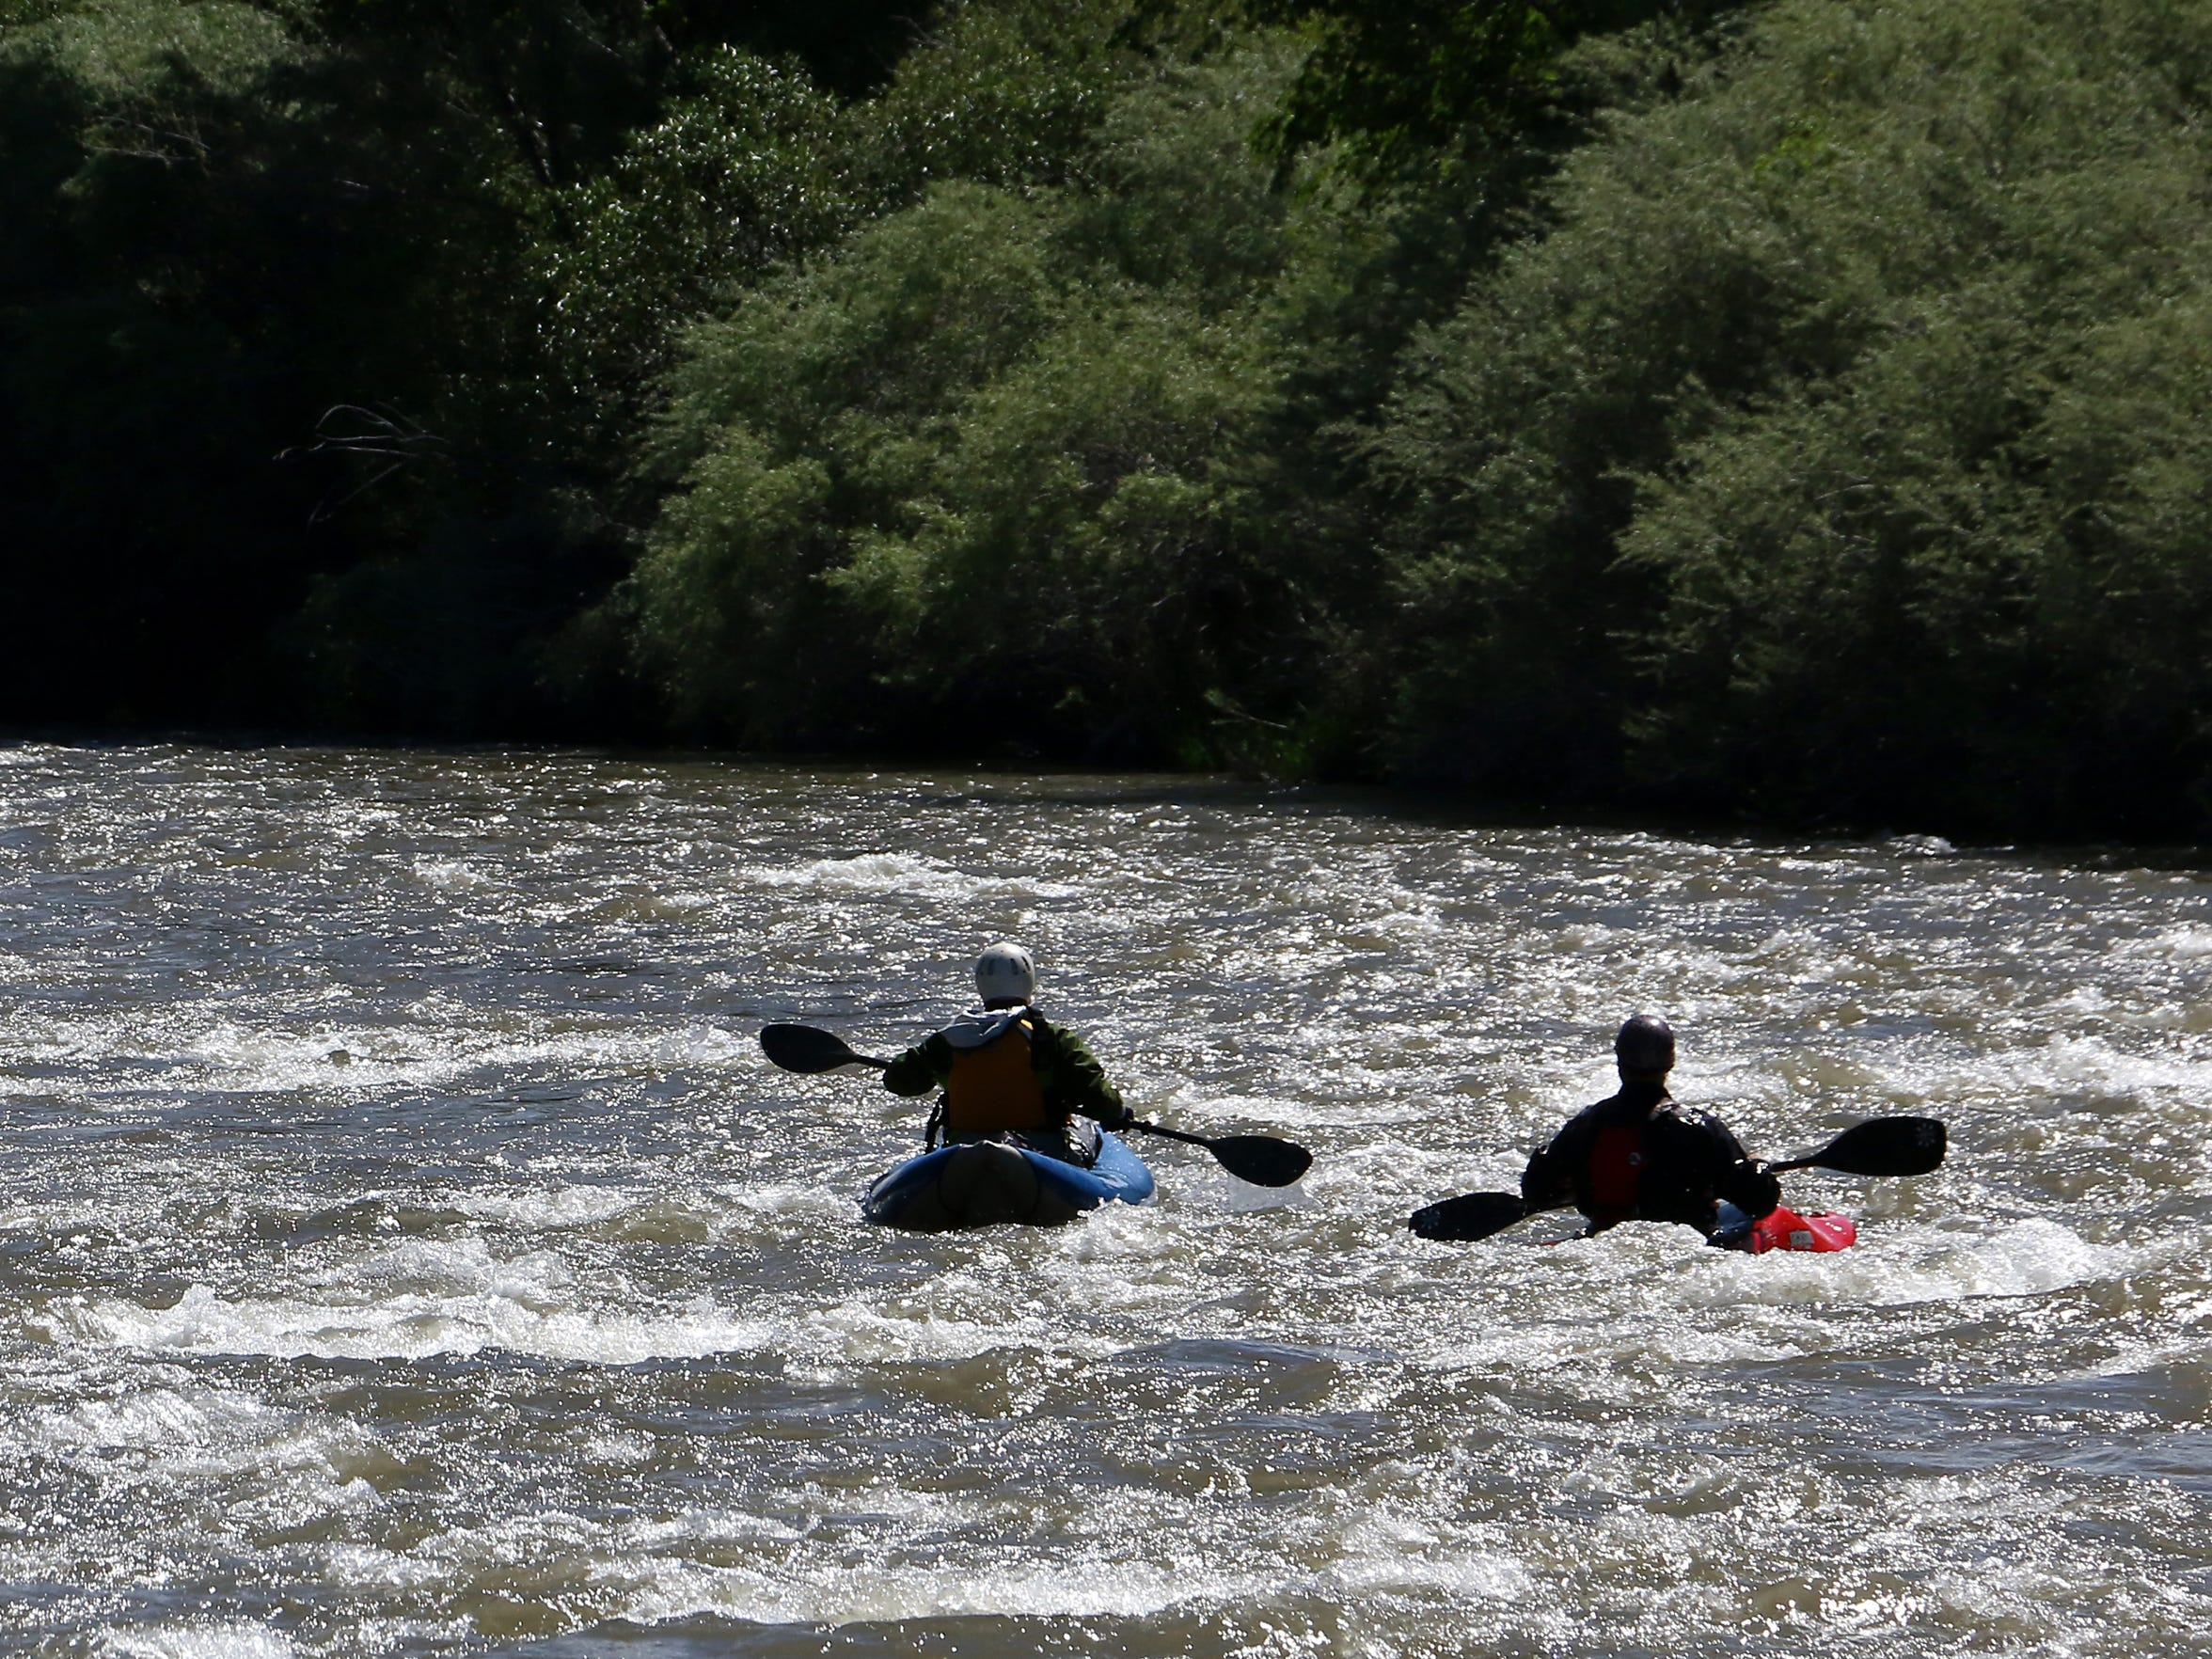 Ben Spillman and Noah Fraser paddle the Truckee River west of Reno on May 14, 2016. RGJ reporters Ben Spillman and Jason Bean paddle the Truckee River from Truckee to Pyramid Lake during May of 2016.